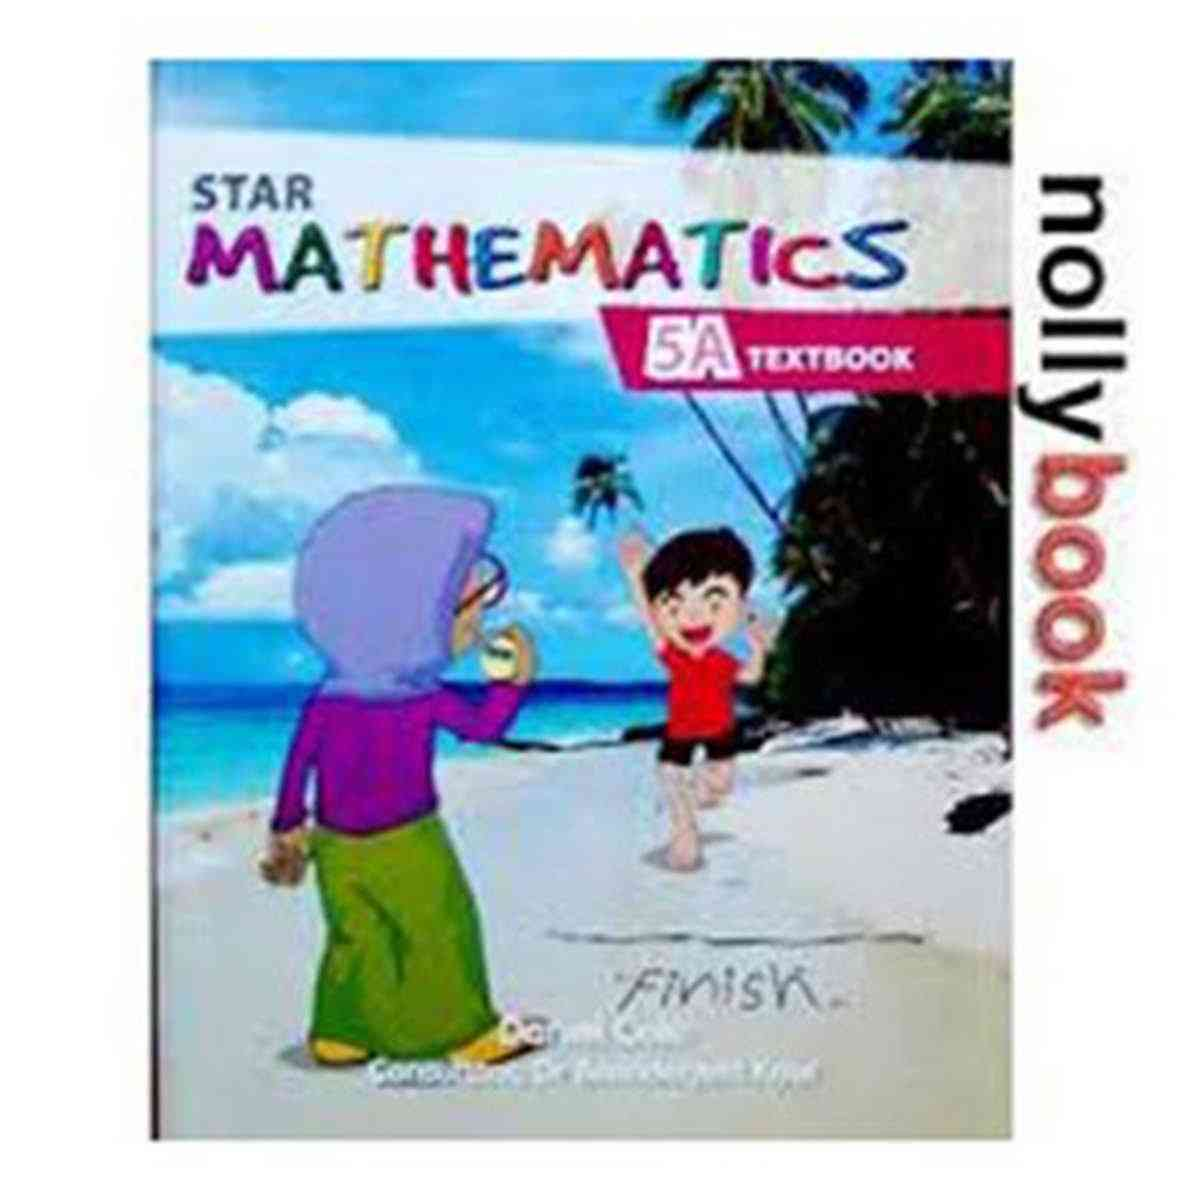 Paramount Star Mathematics: Textbook 5A Pb